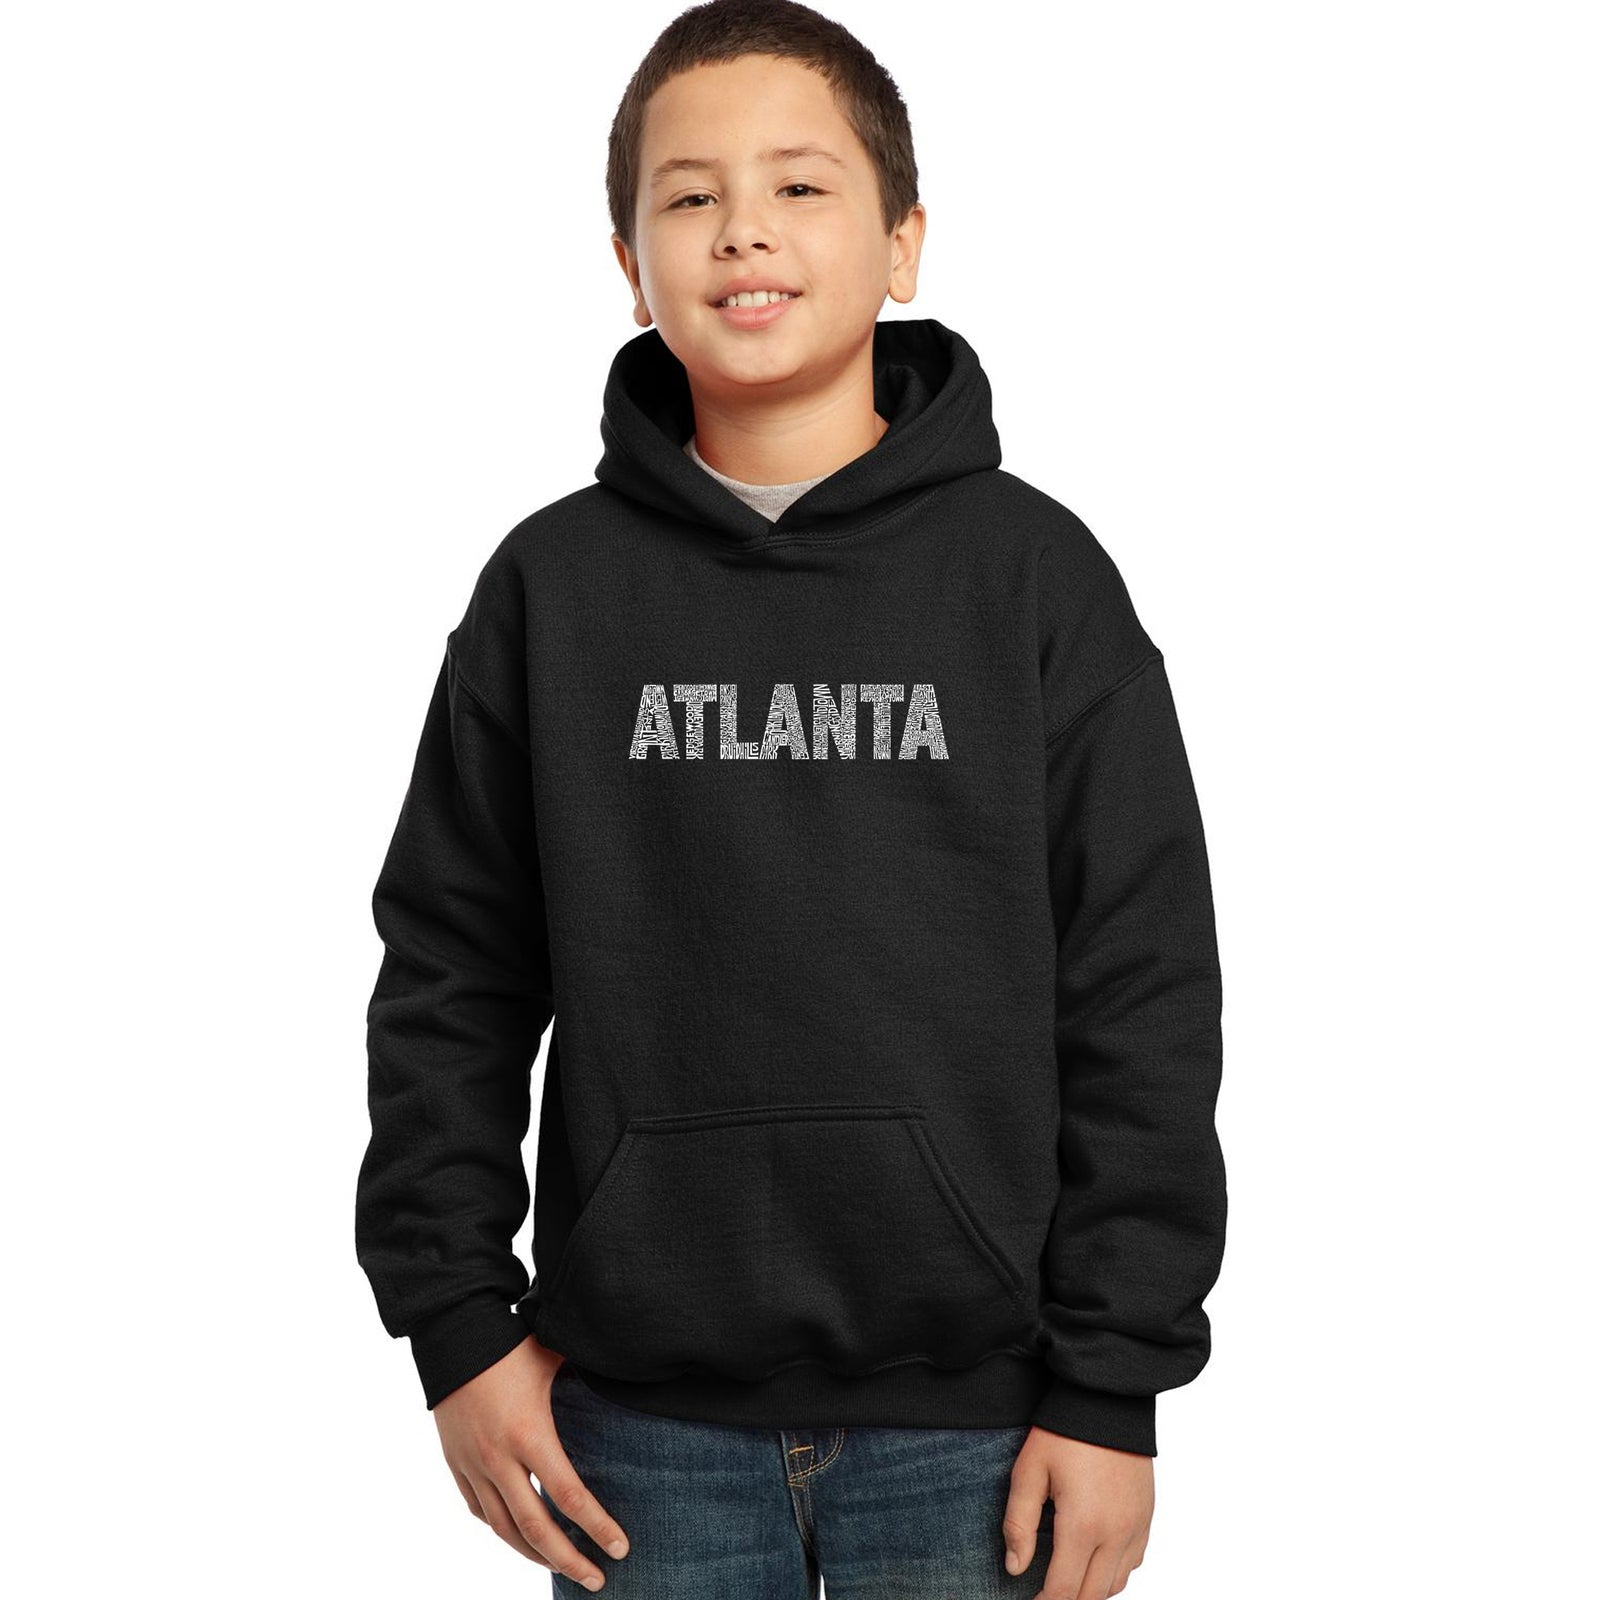 Boy's Hooded Sweatshirt - ATLANTA NEIGHBORHOODS